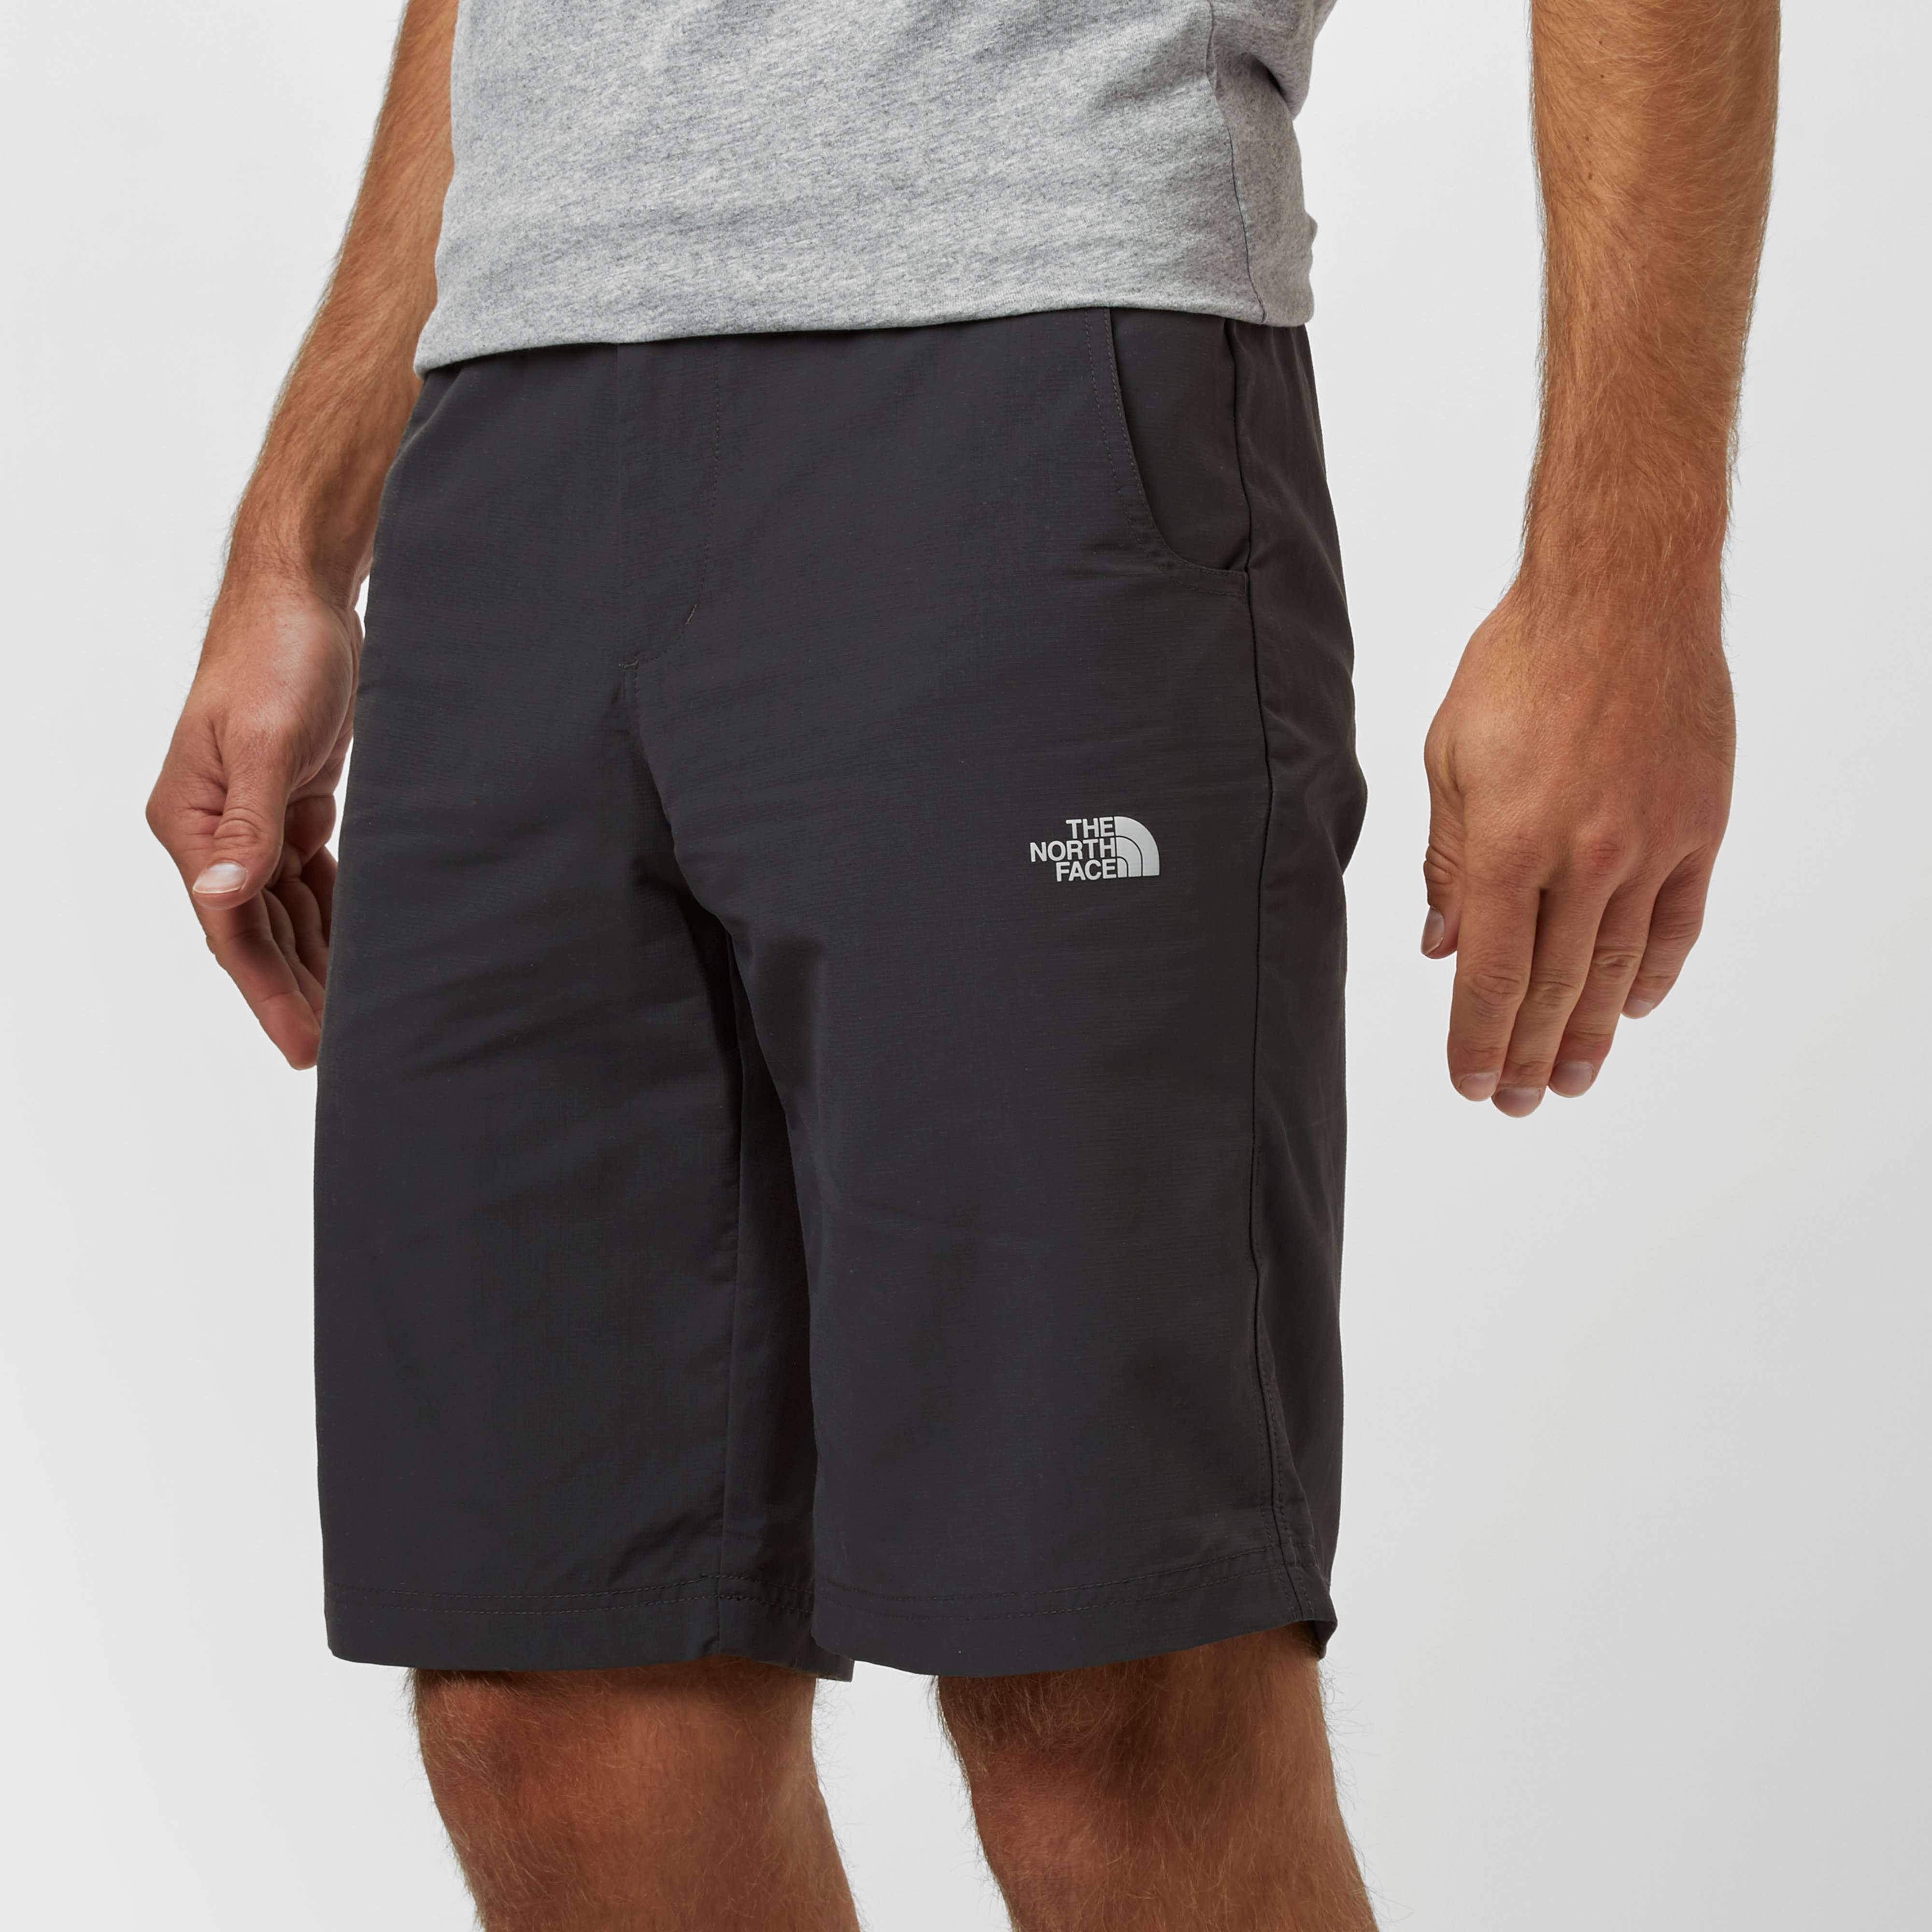 THE NORTH FACE Men's Taken Hiking Shorts